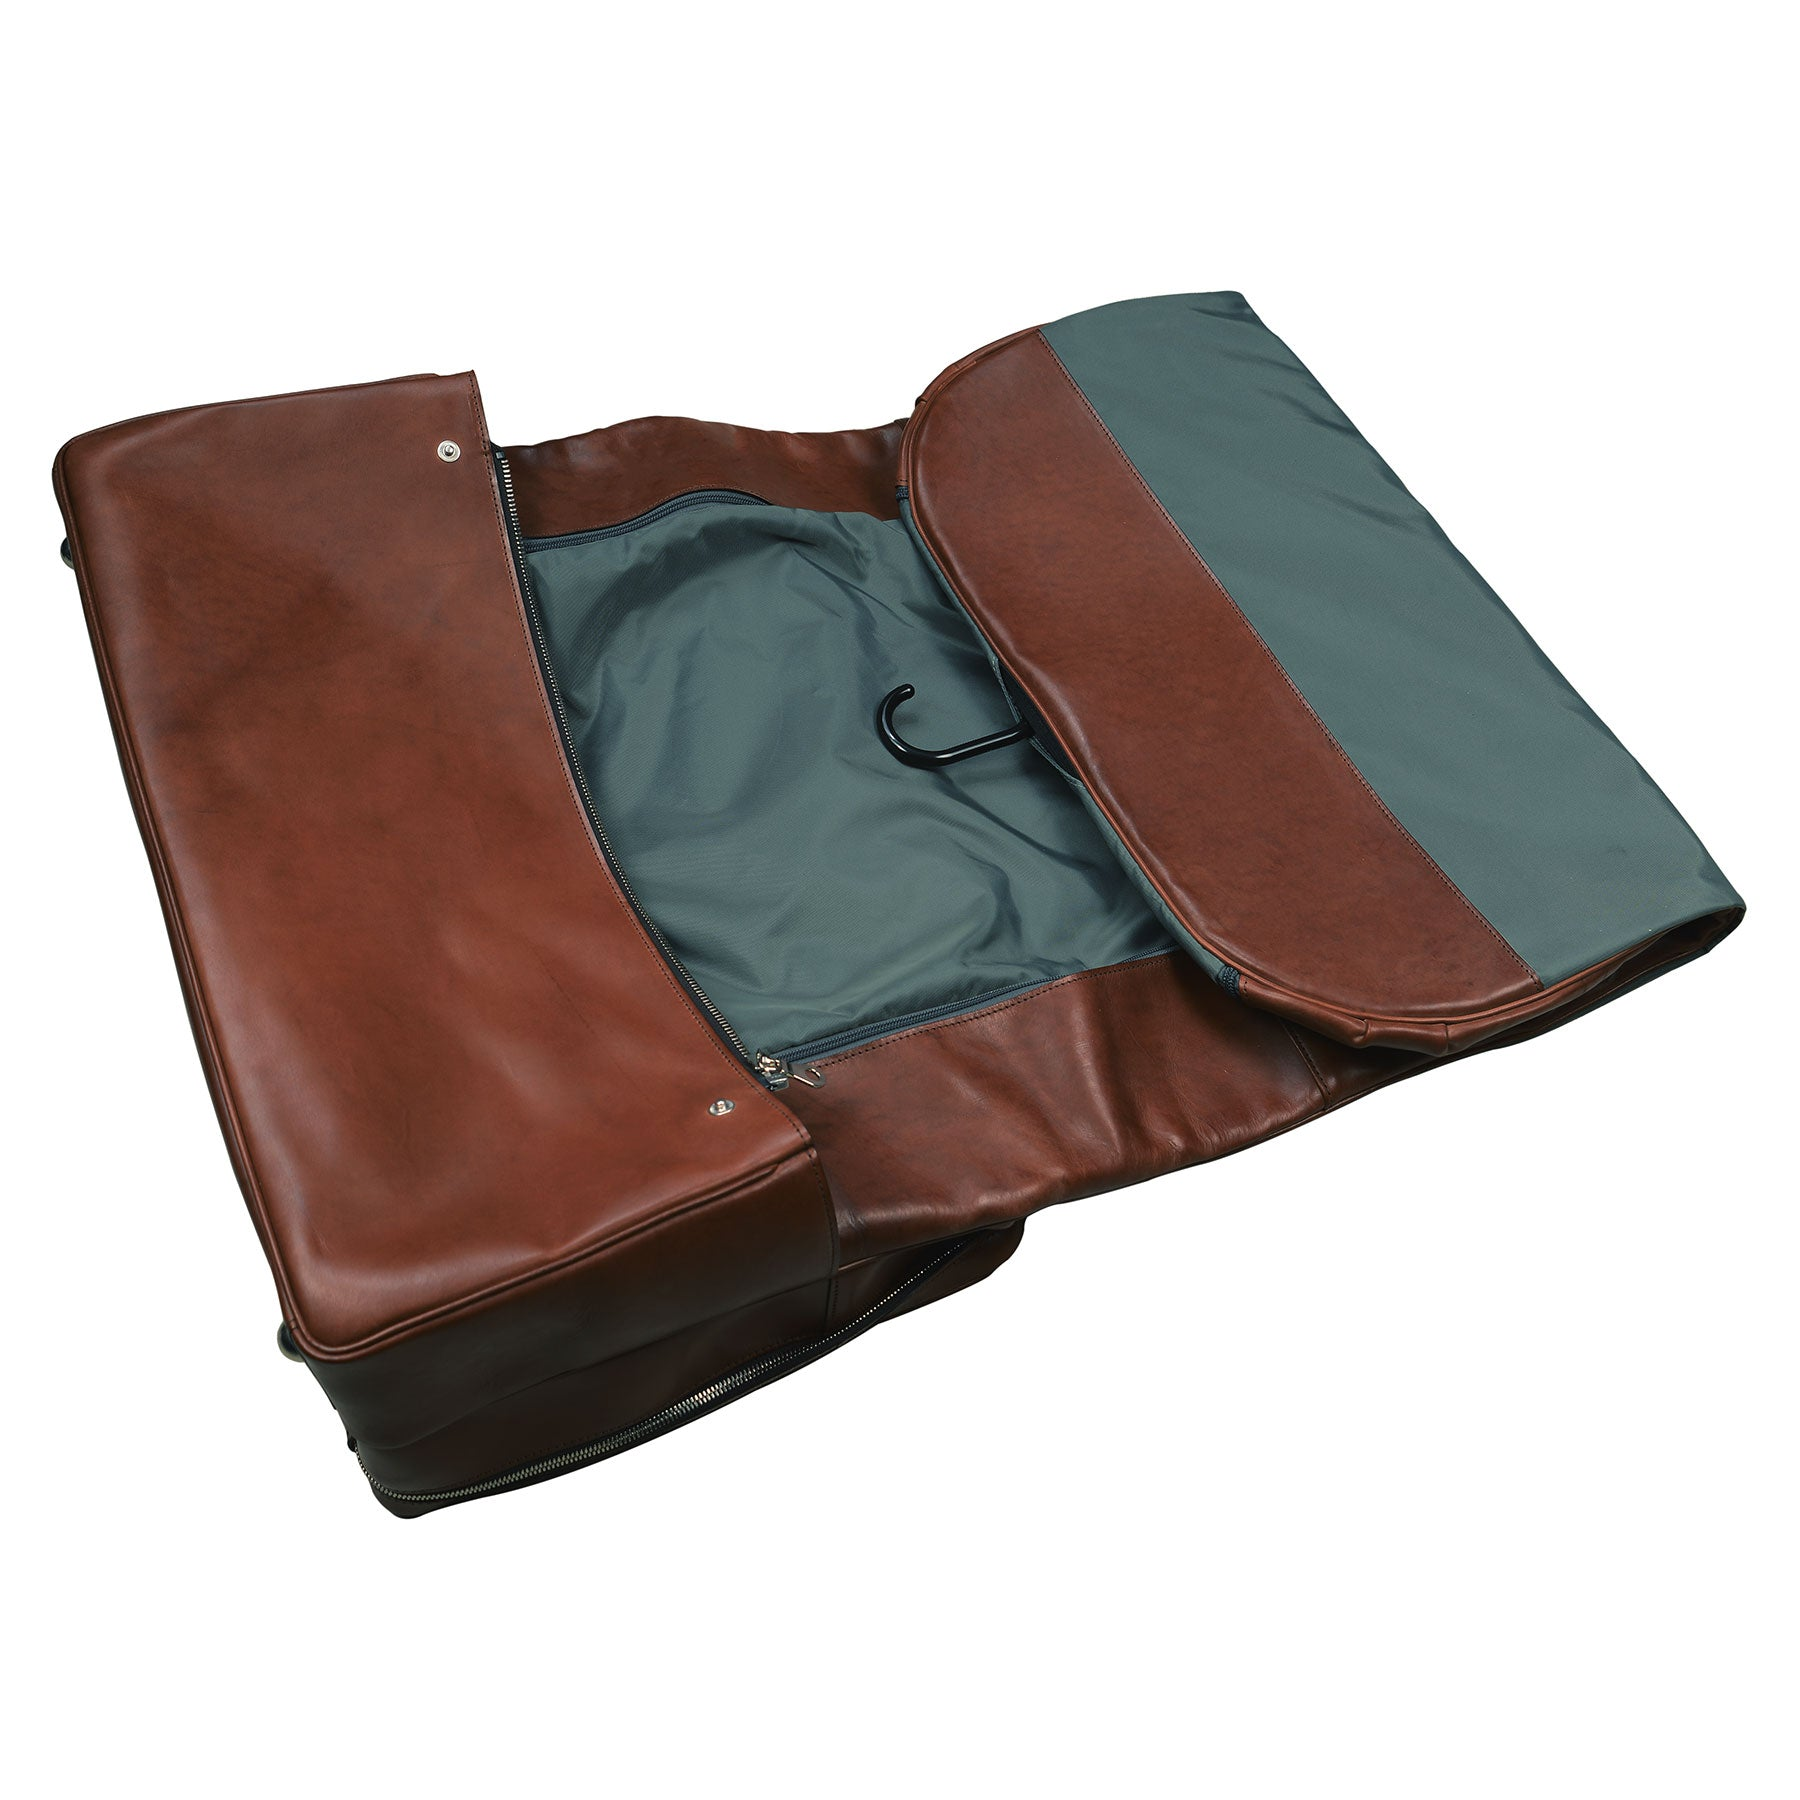 Short Hop Garment Bag: hand-burnished leather